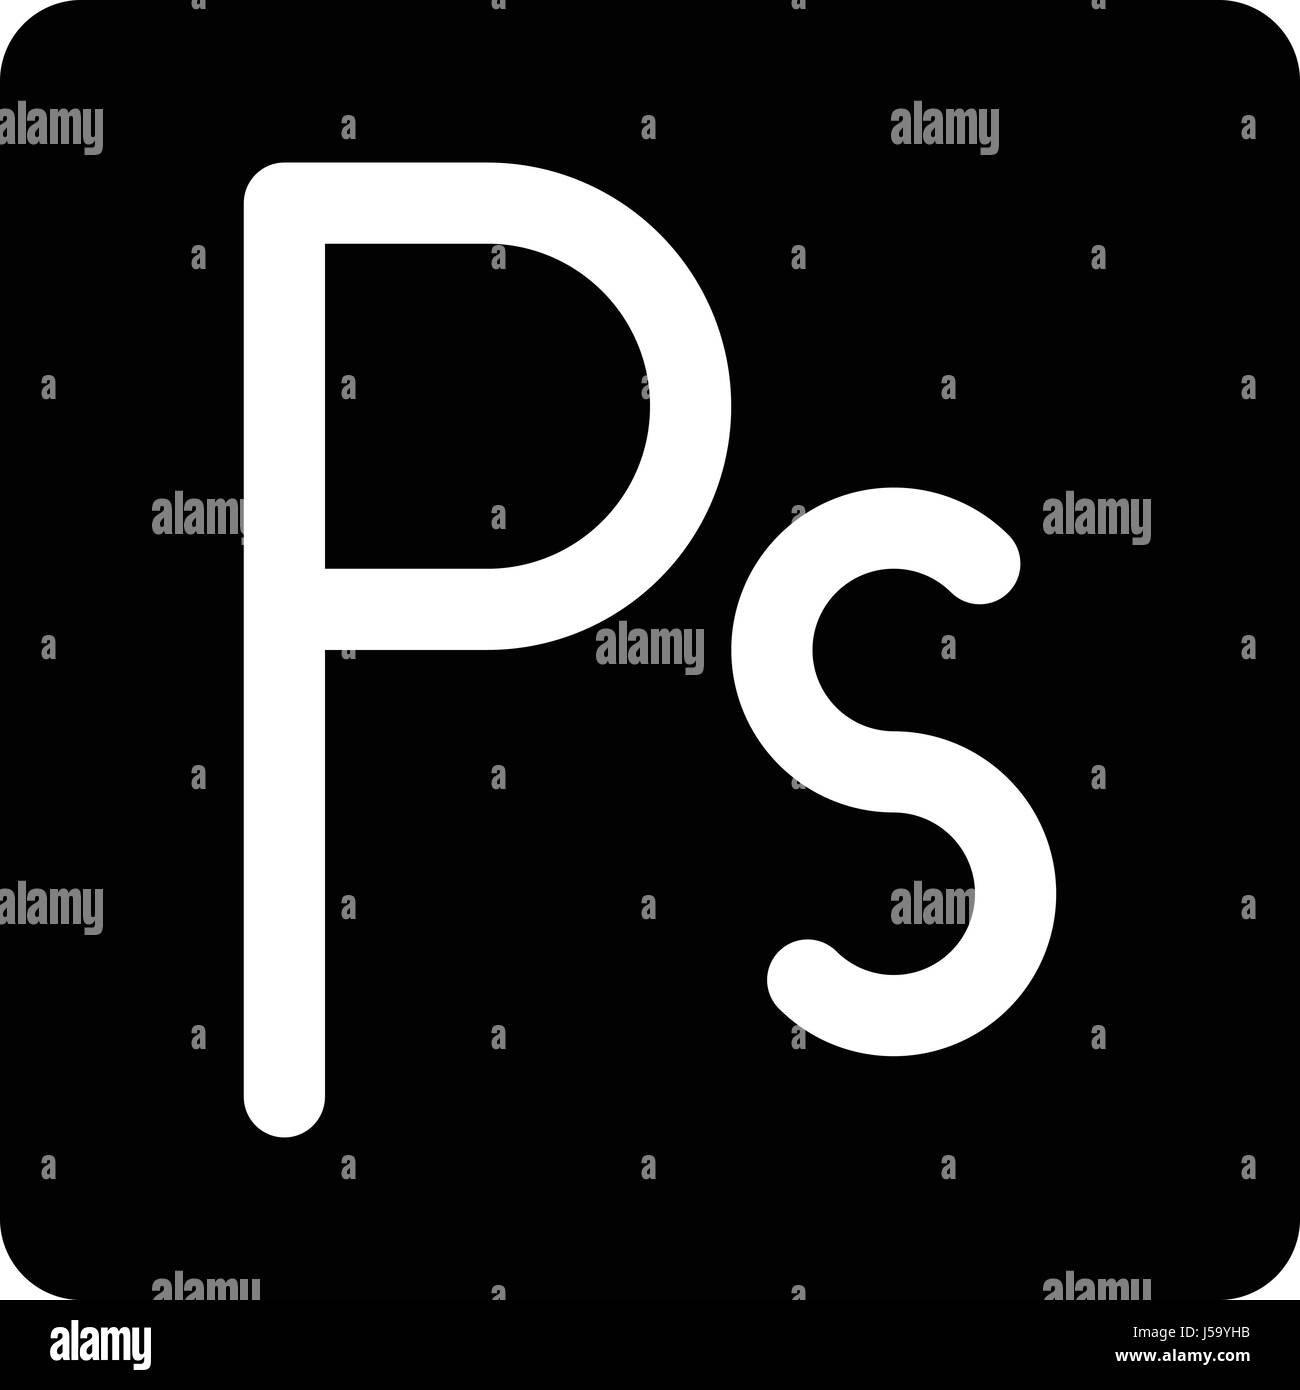 how to use adobe stock in photoshop